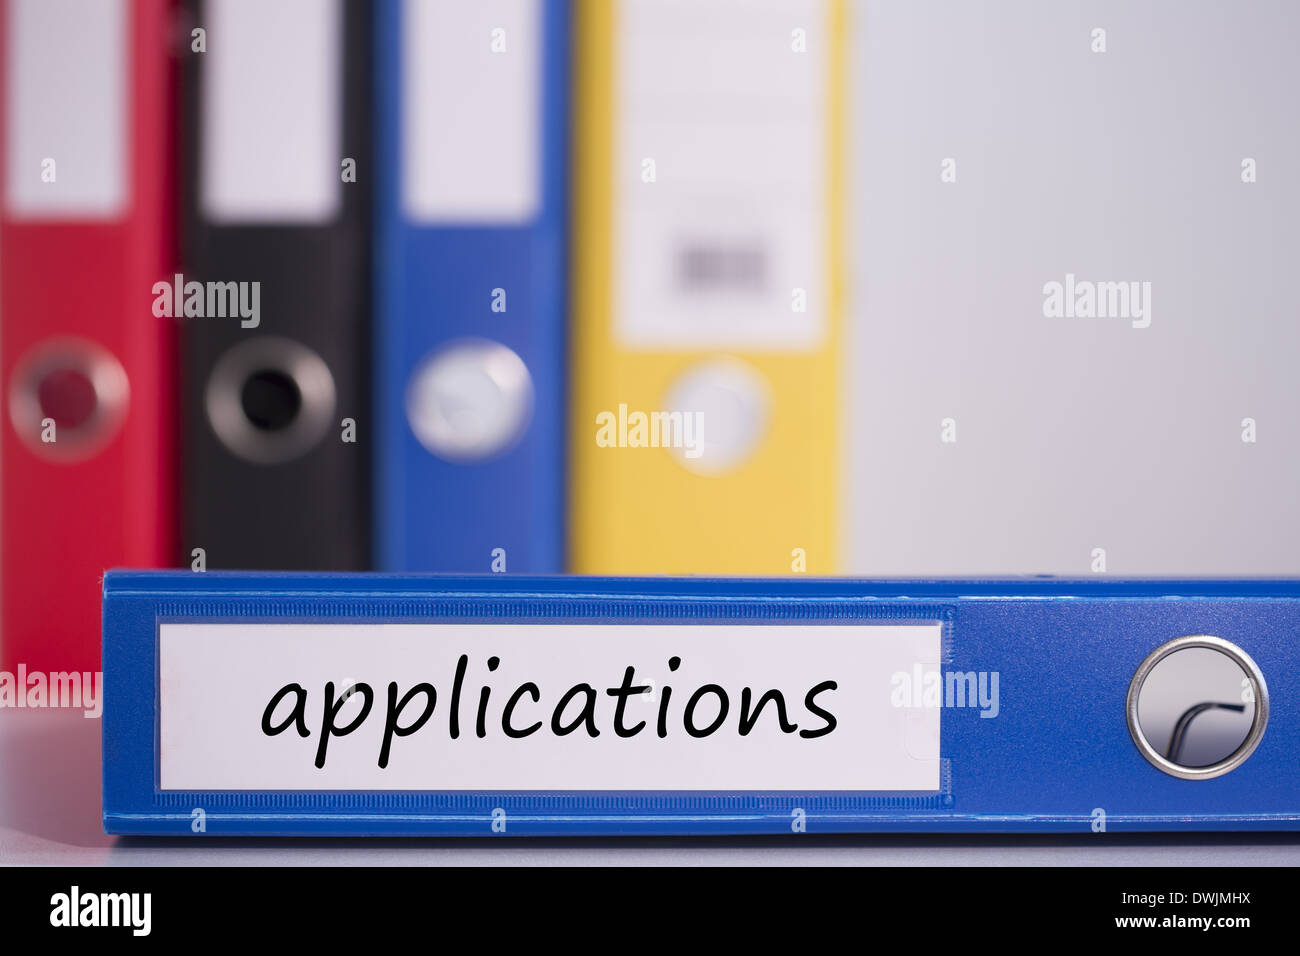 Applications on blue business binder - Stock Image